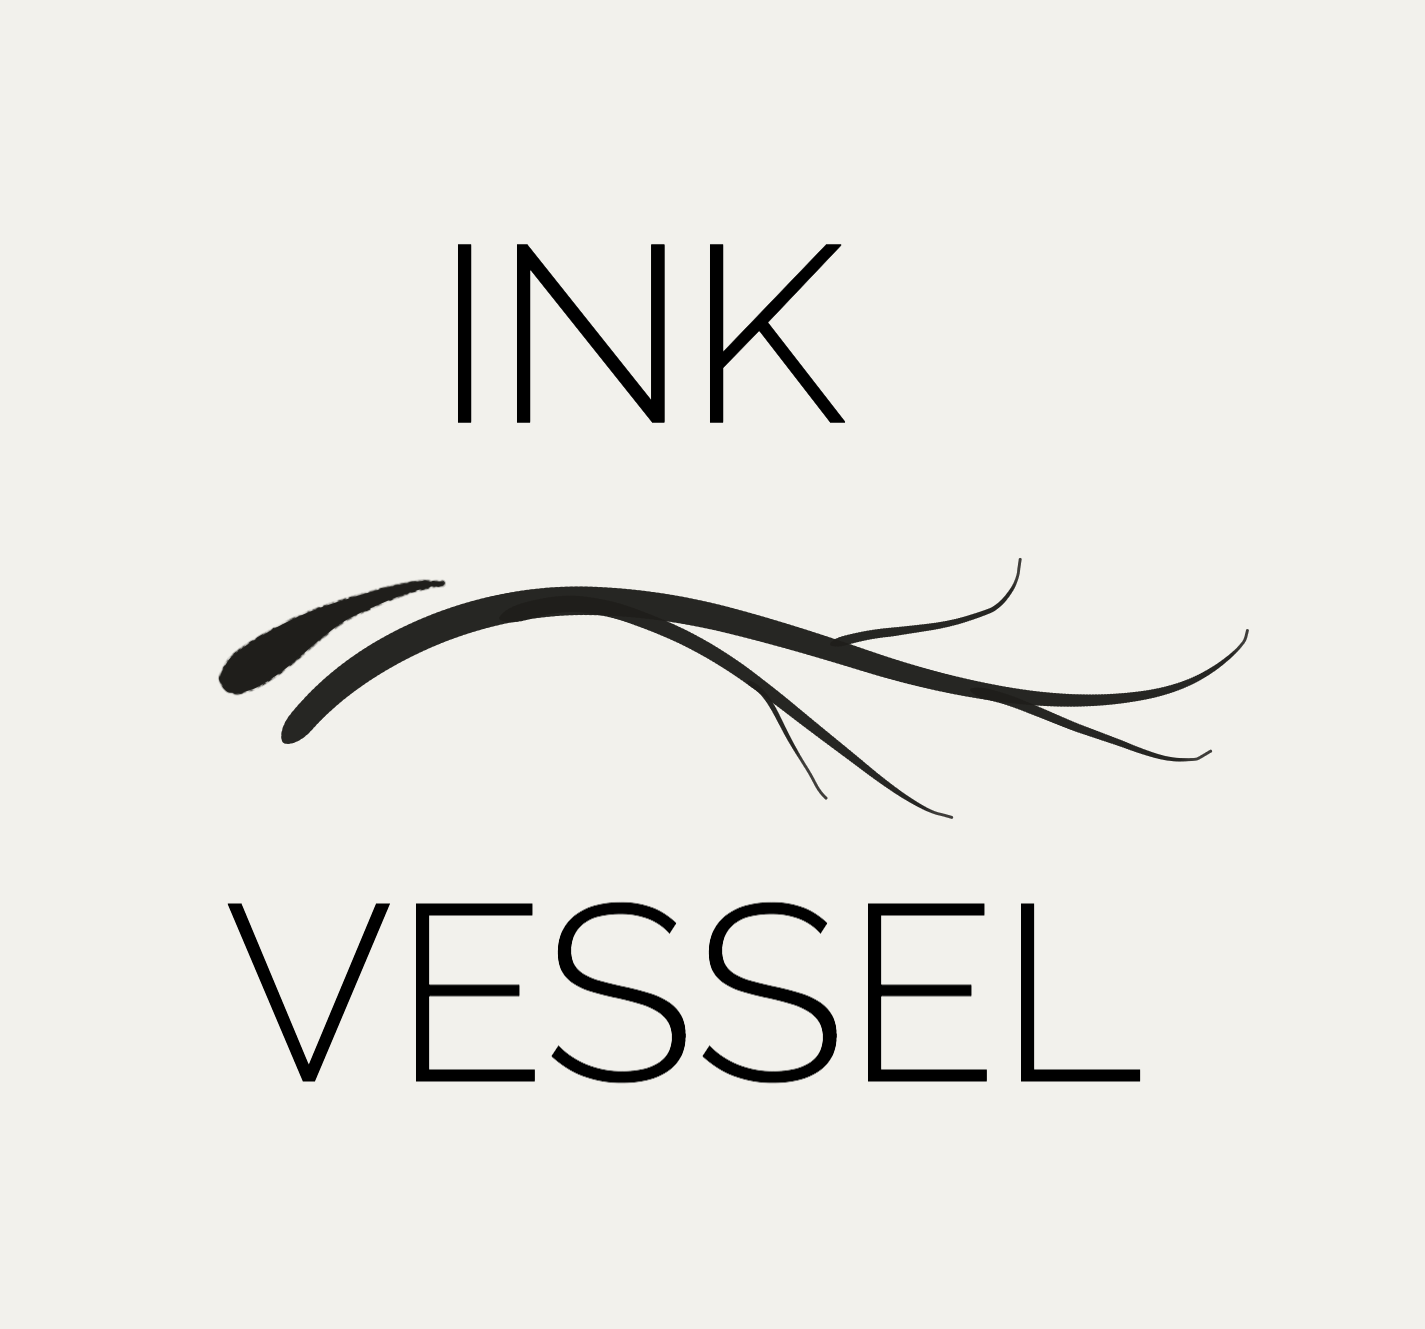 The Ink Vessel